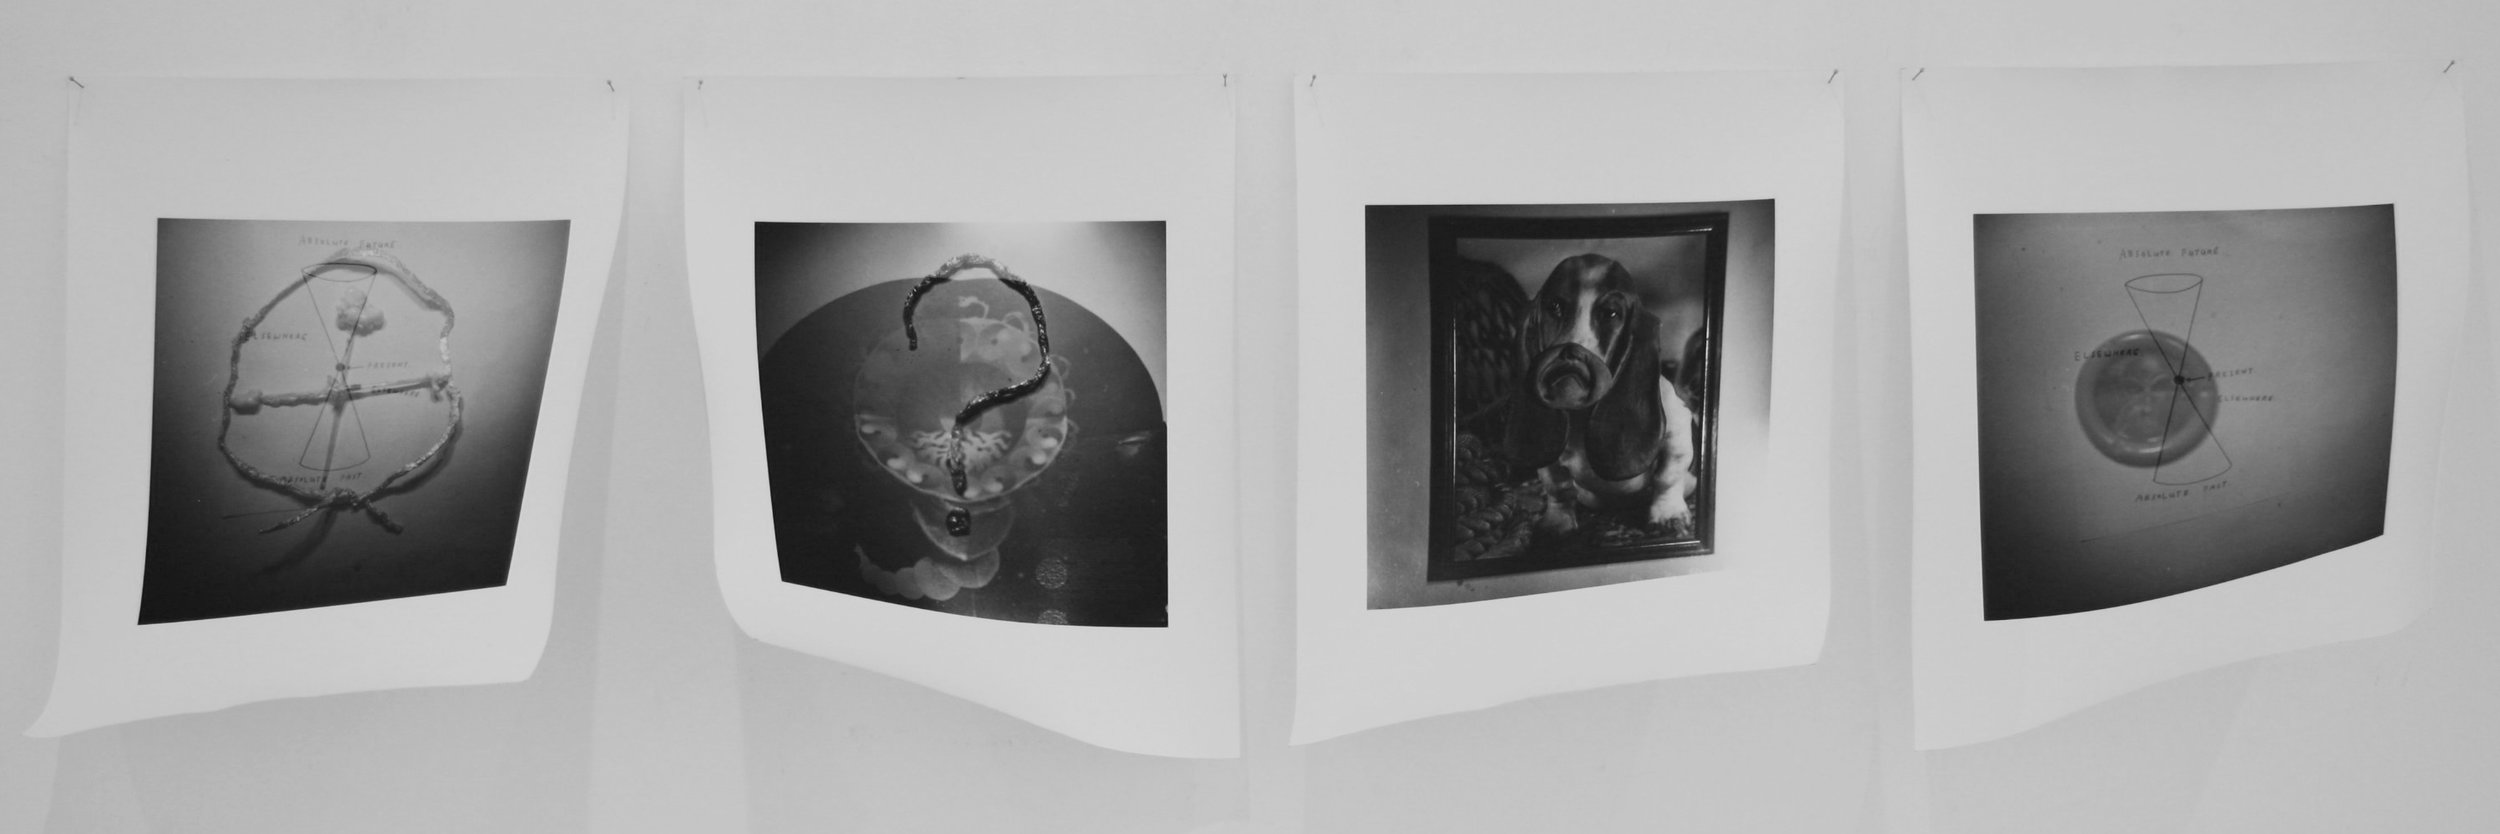 MATTHEW HOPKINS  Accidental Still Life #1 - 4  2009 silver gelatin photographs 8 x 10 inches Edition of 3